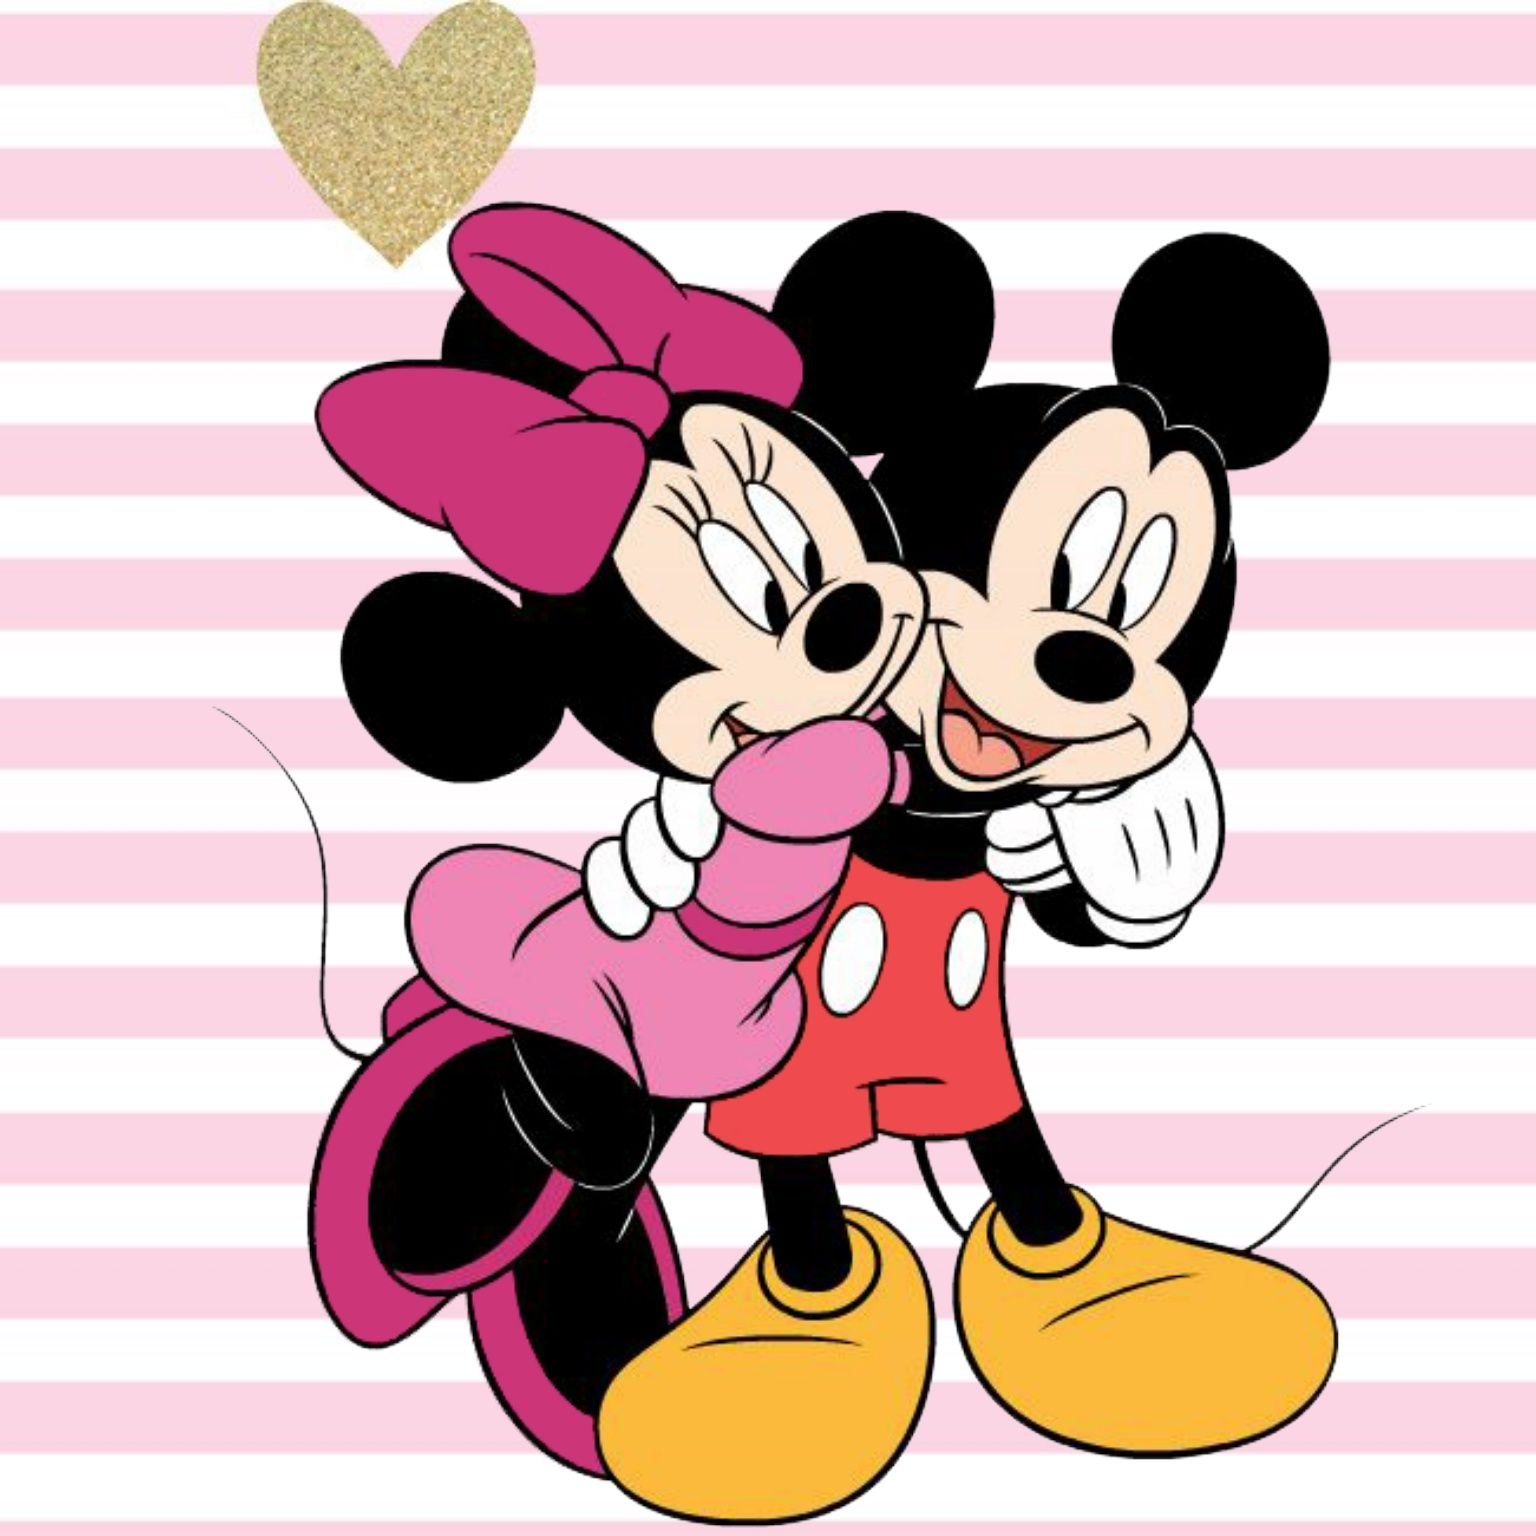 Minnie giving a hug to her sweetheart mickey amor pinterest minnie giving a hug to her sweetheart mickey thecheapjerseys Image collections